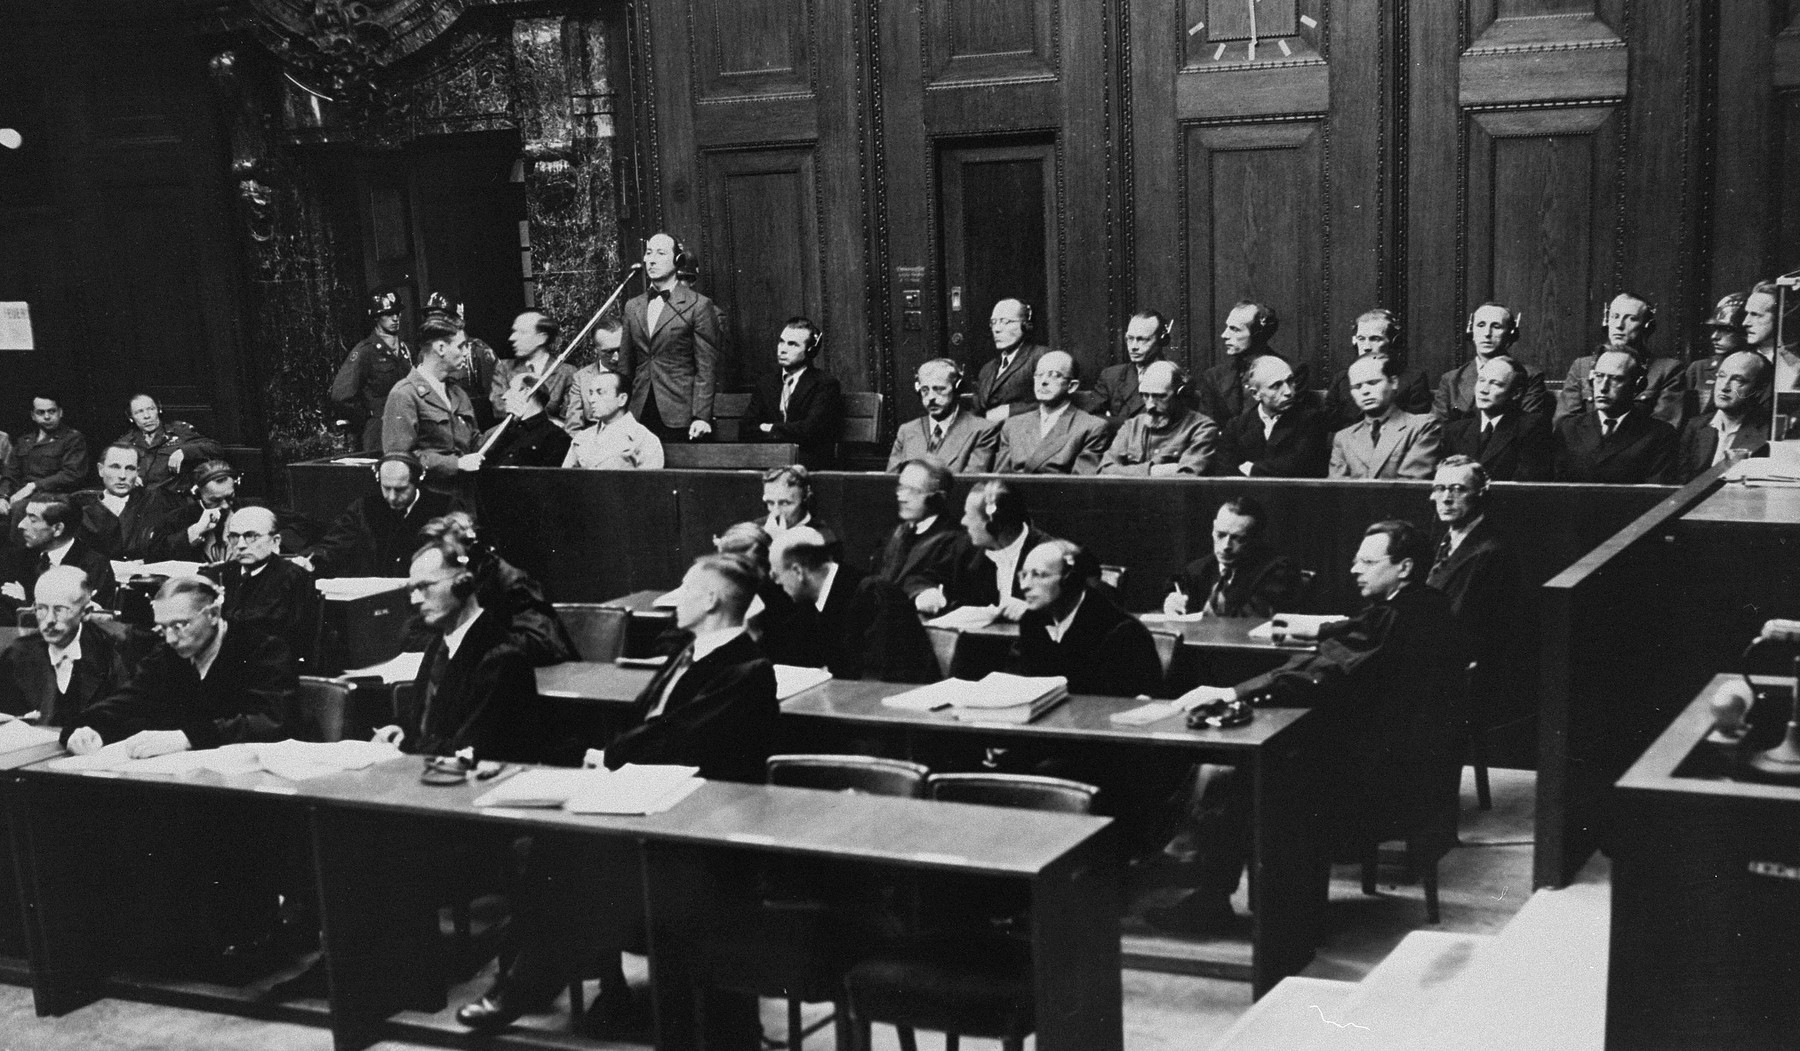 Defendant Gustav Nosske pleads not guilty during his arraignment at the Einsatzgruppen Trial.